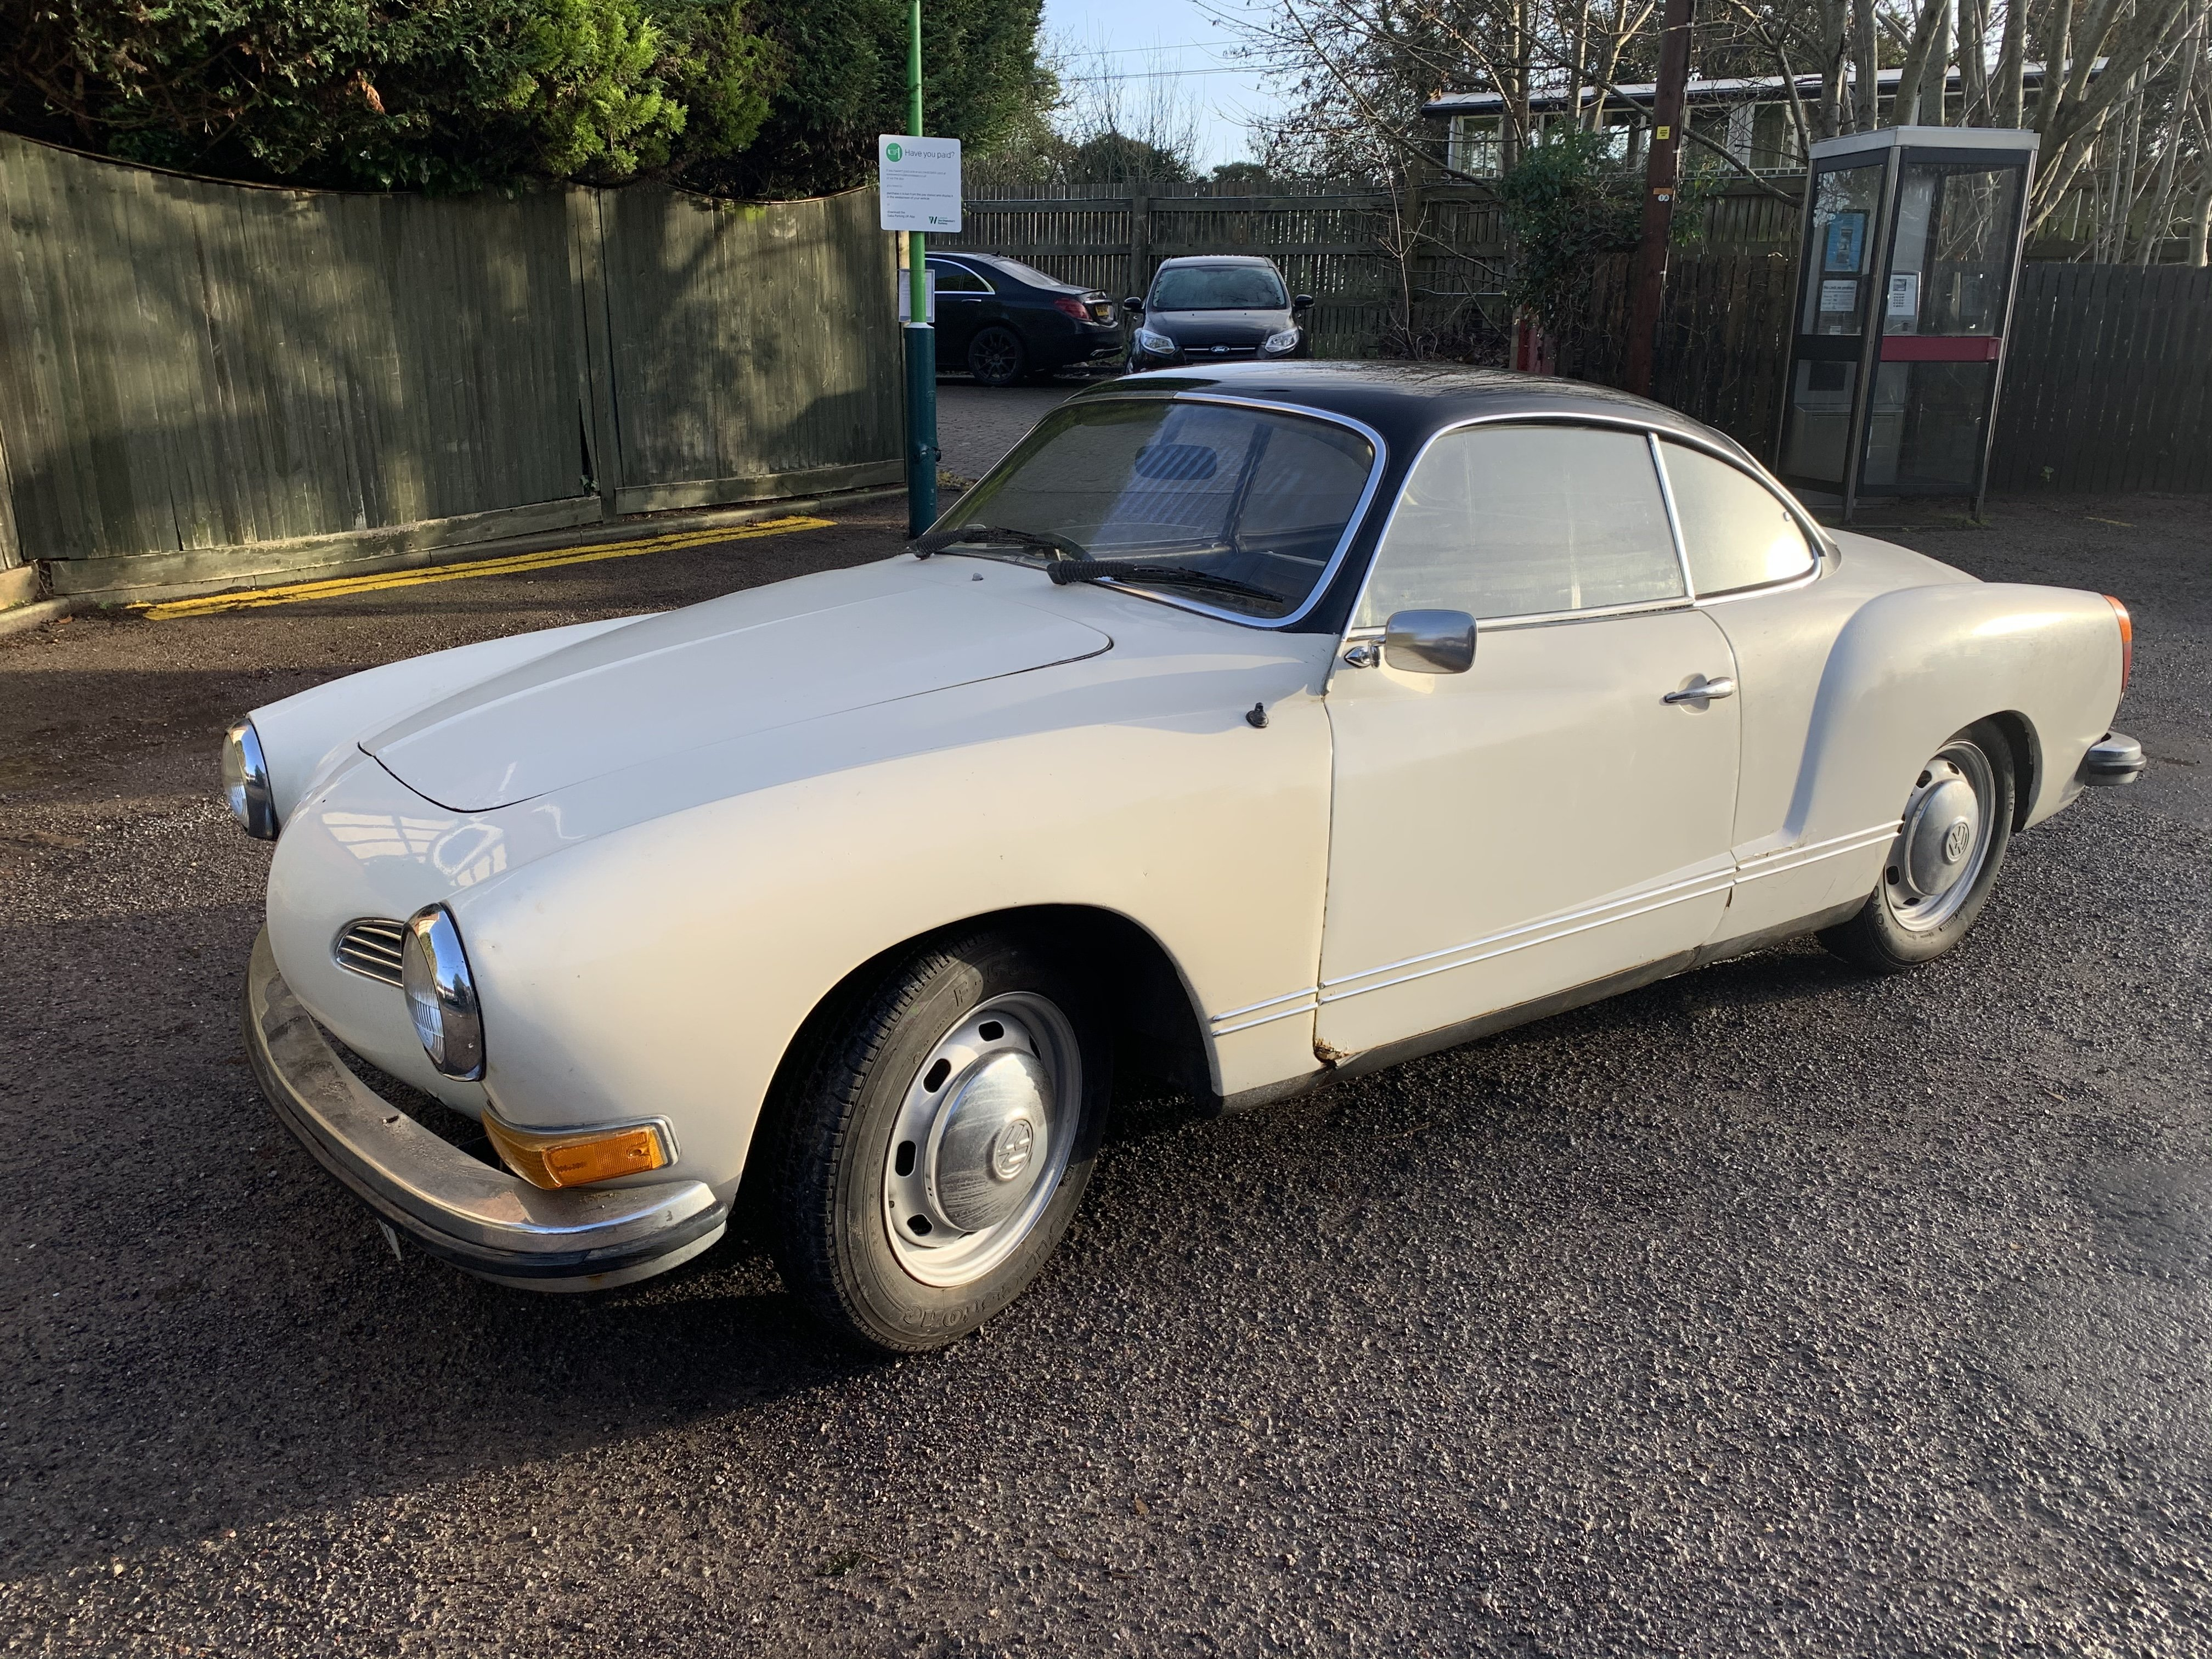 1972 Karmann Ghia Coupe RHD For Sale (picture 2 of 8)